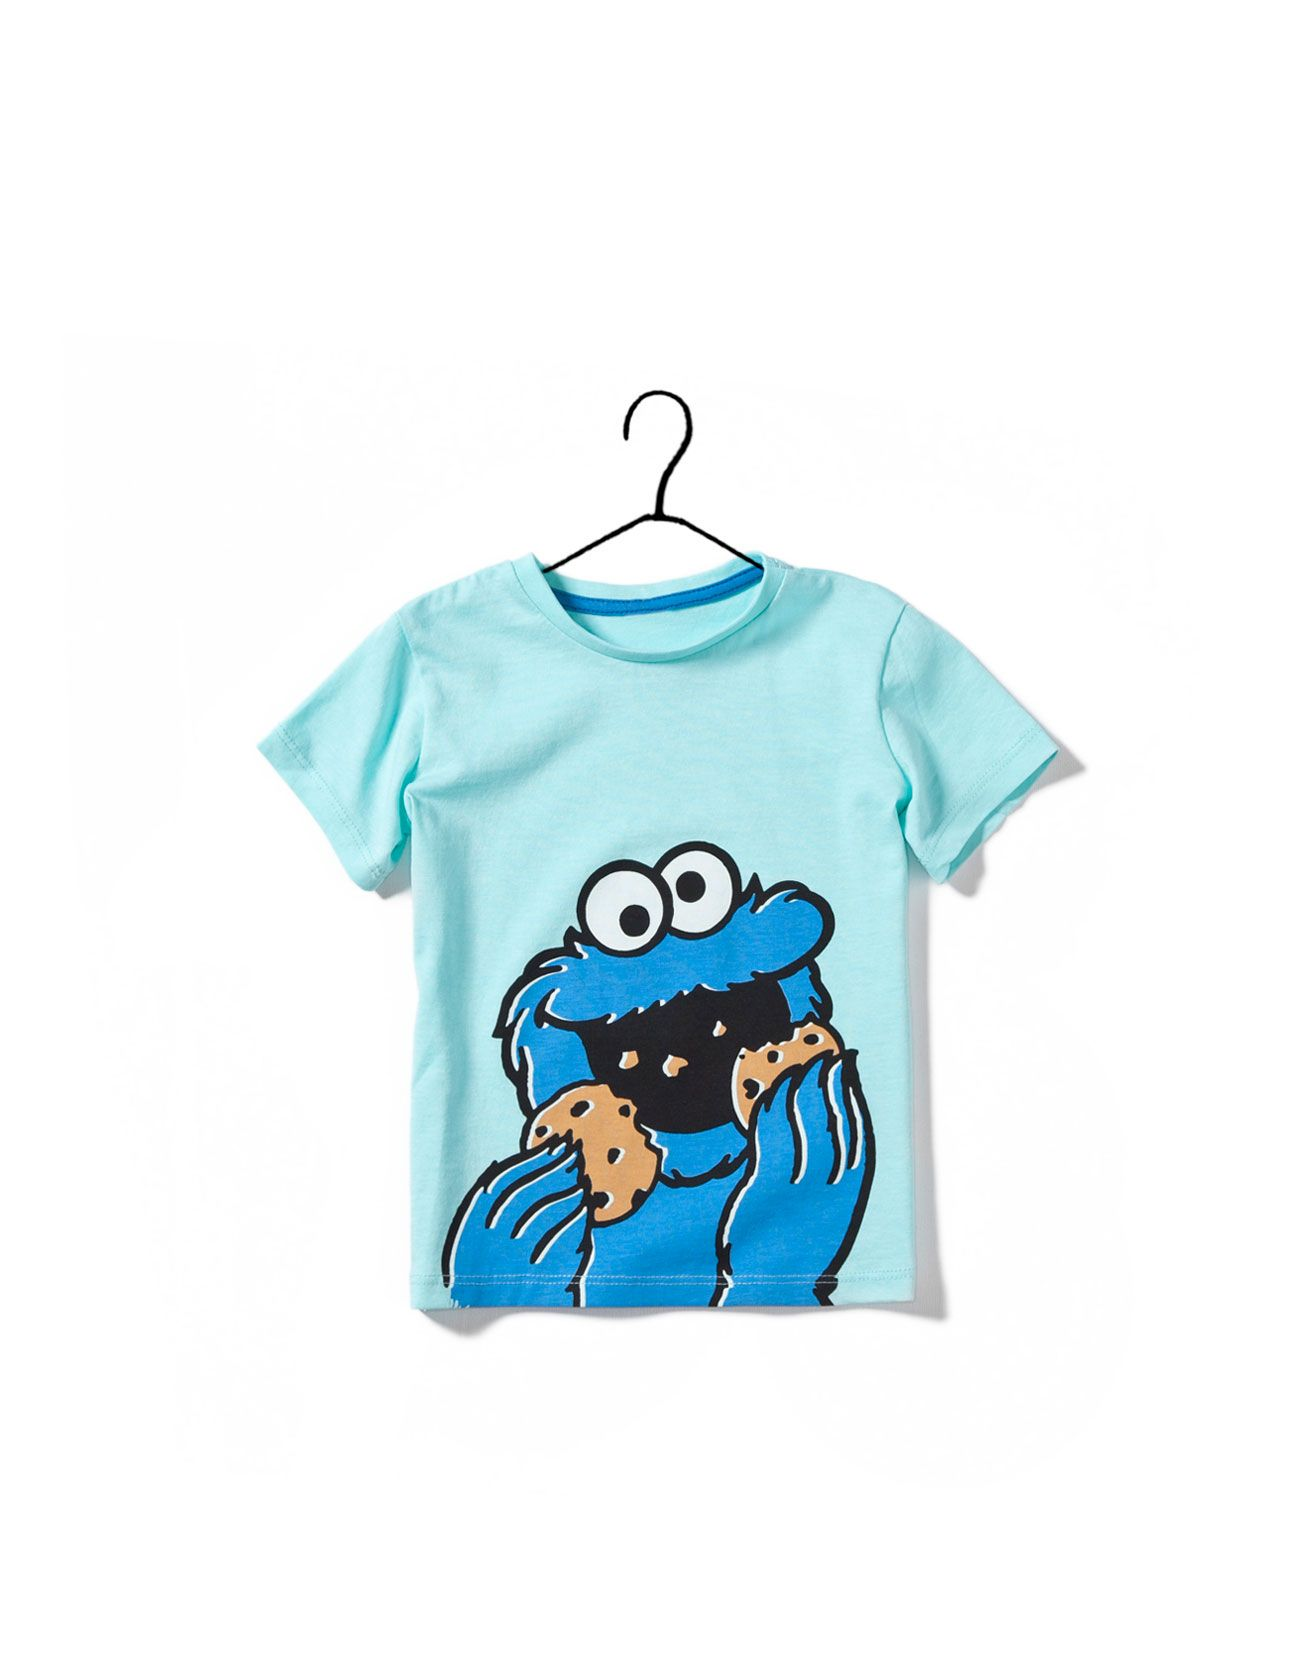 Cookie monster Zara baby A Board For The Kiddos